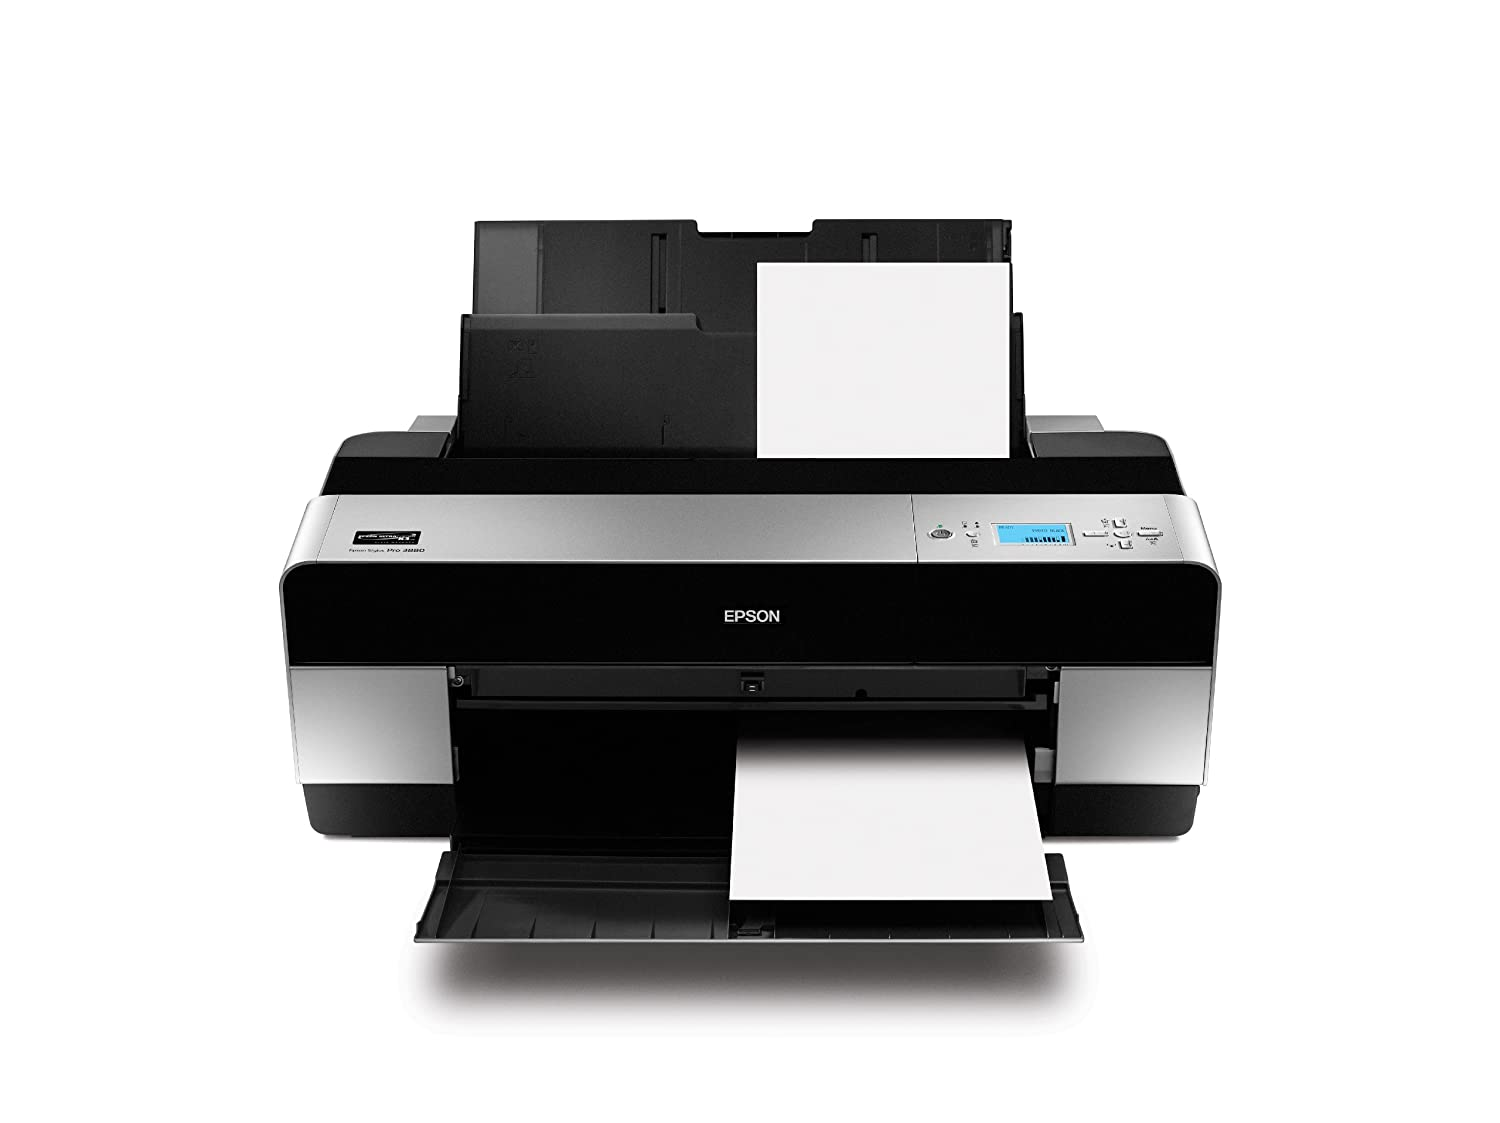 EPSON STYLUS PRO 3800 PORTRAIT EDITION PRINTER DRIVERS FOR MAC DOWNLOAD